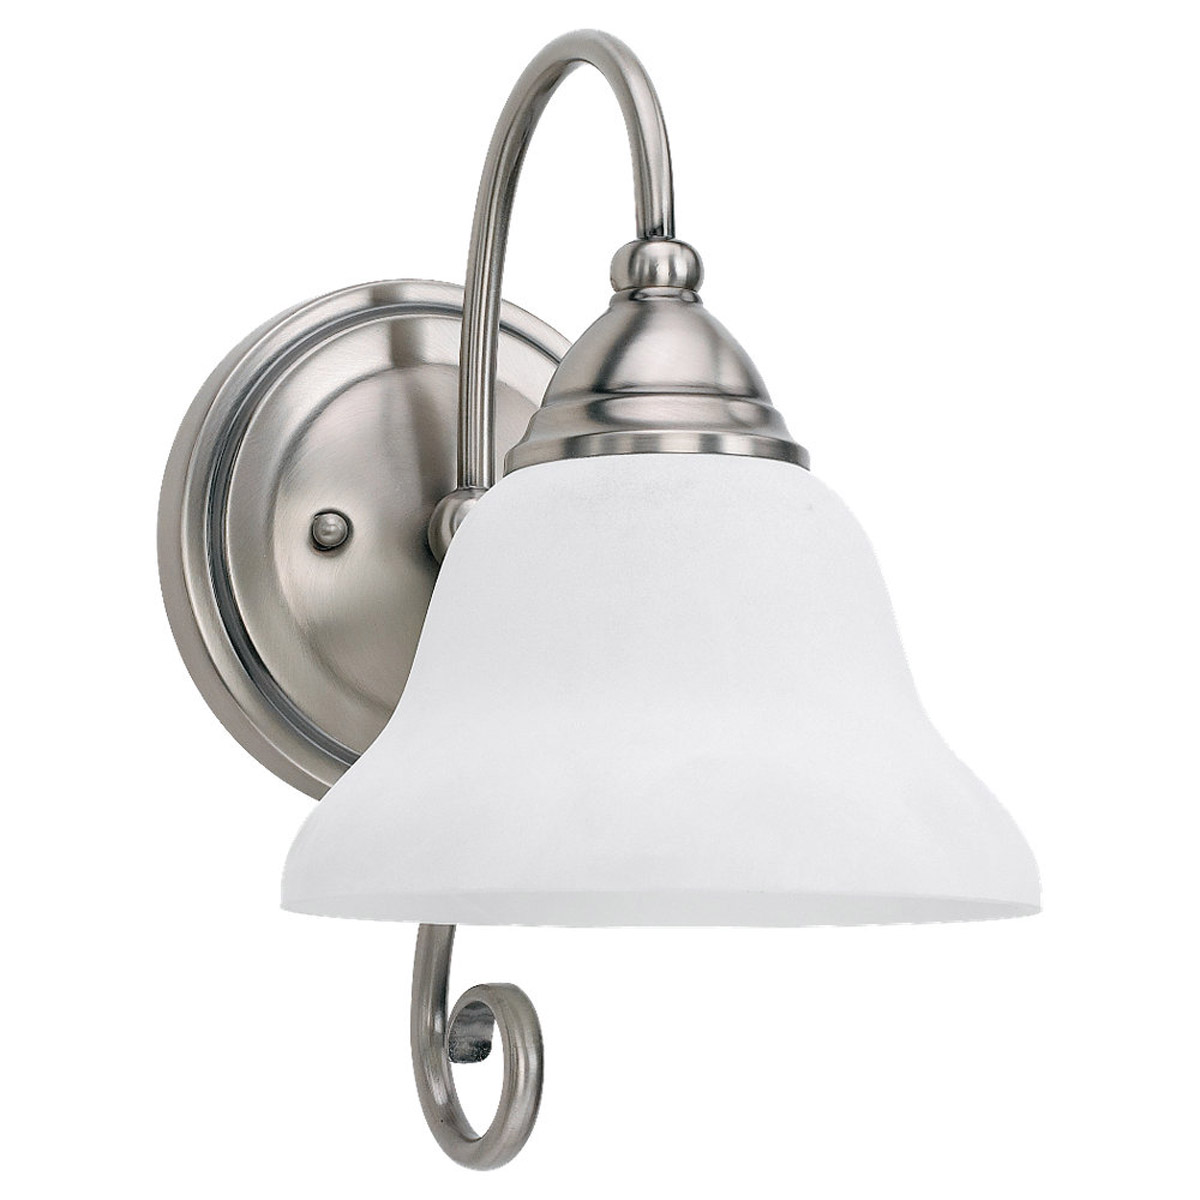 Sea Gull Lighting Montclaire 1 Light Bath Vanity in Antique Brushed Nickel 41105-965 photo